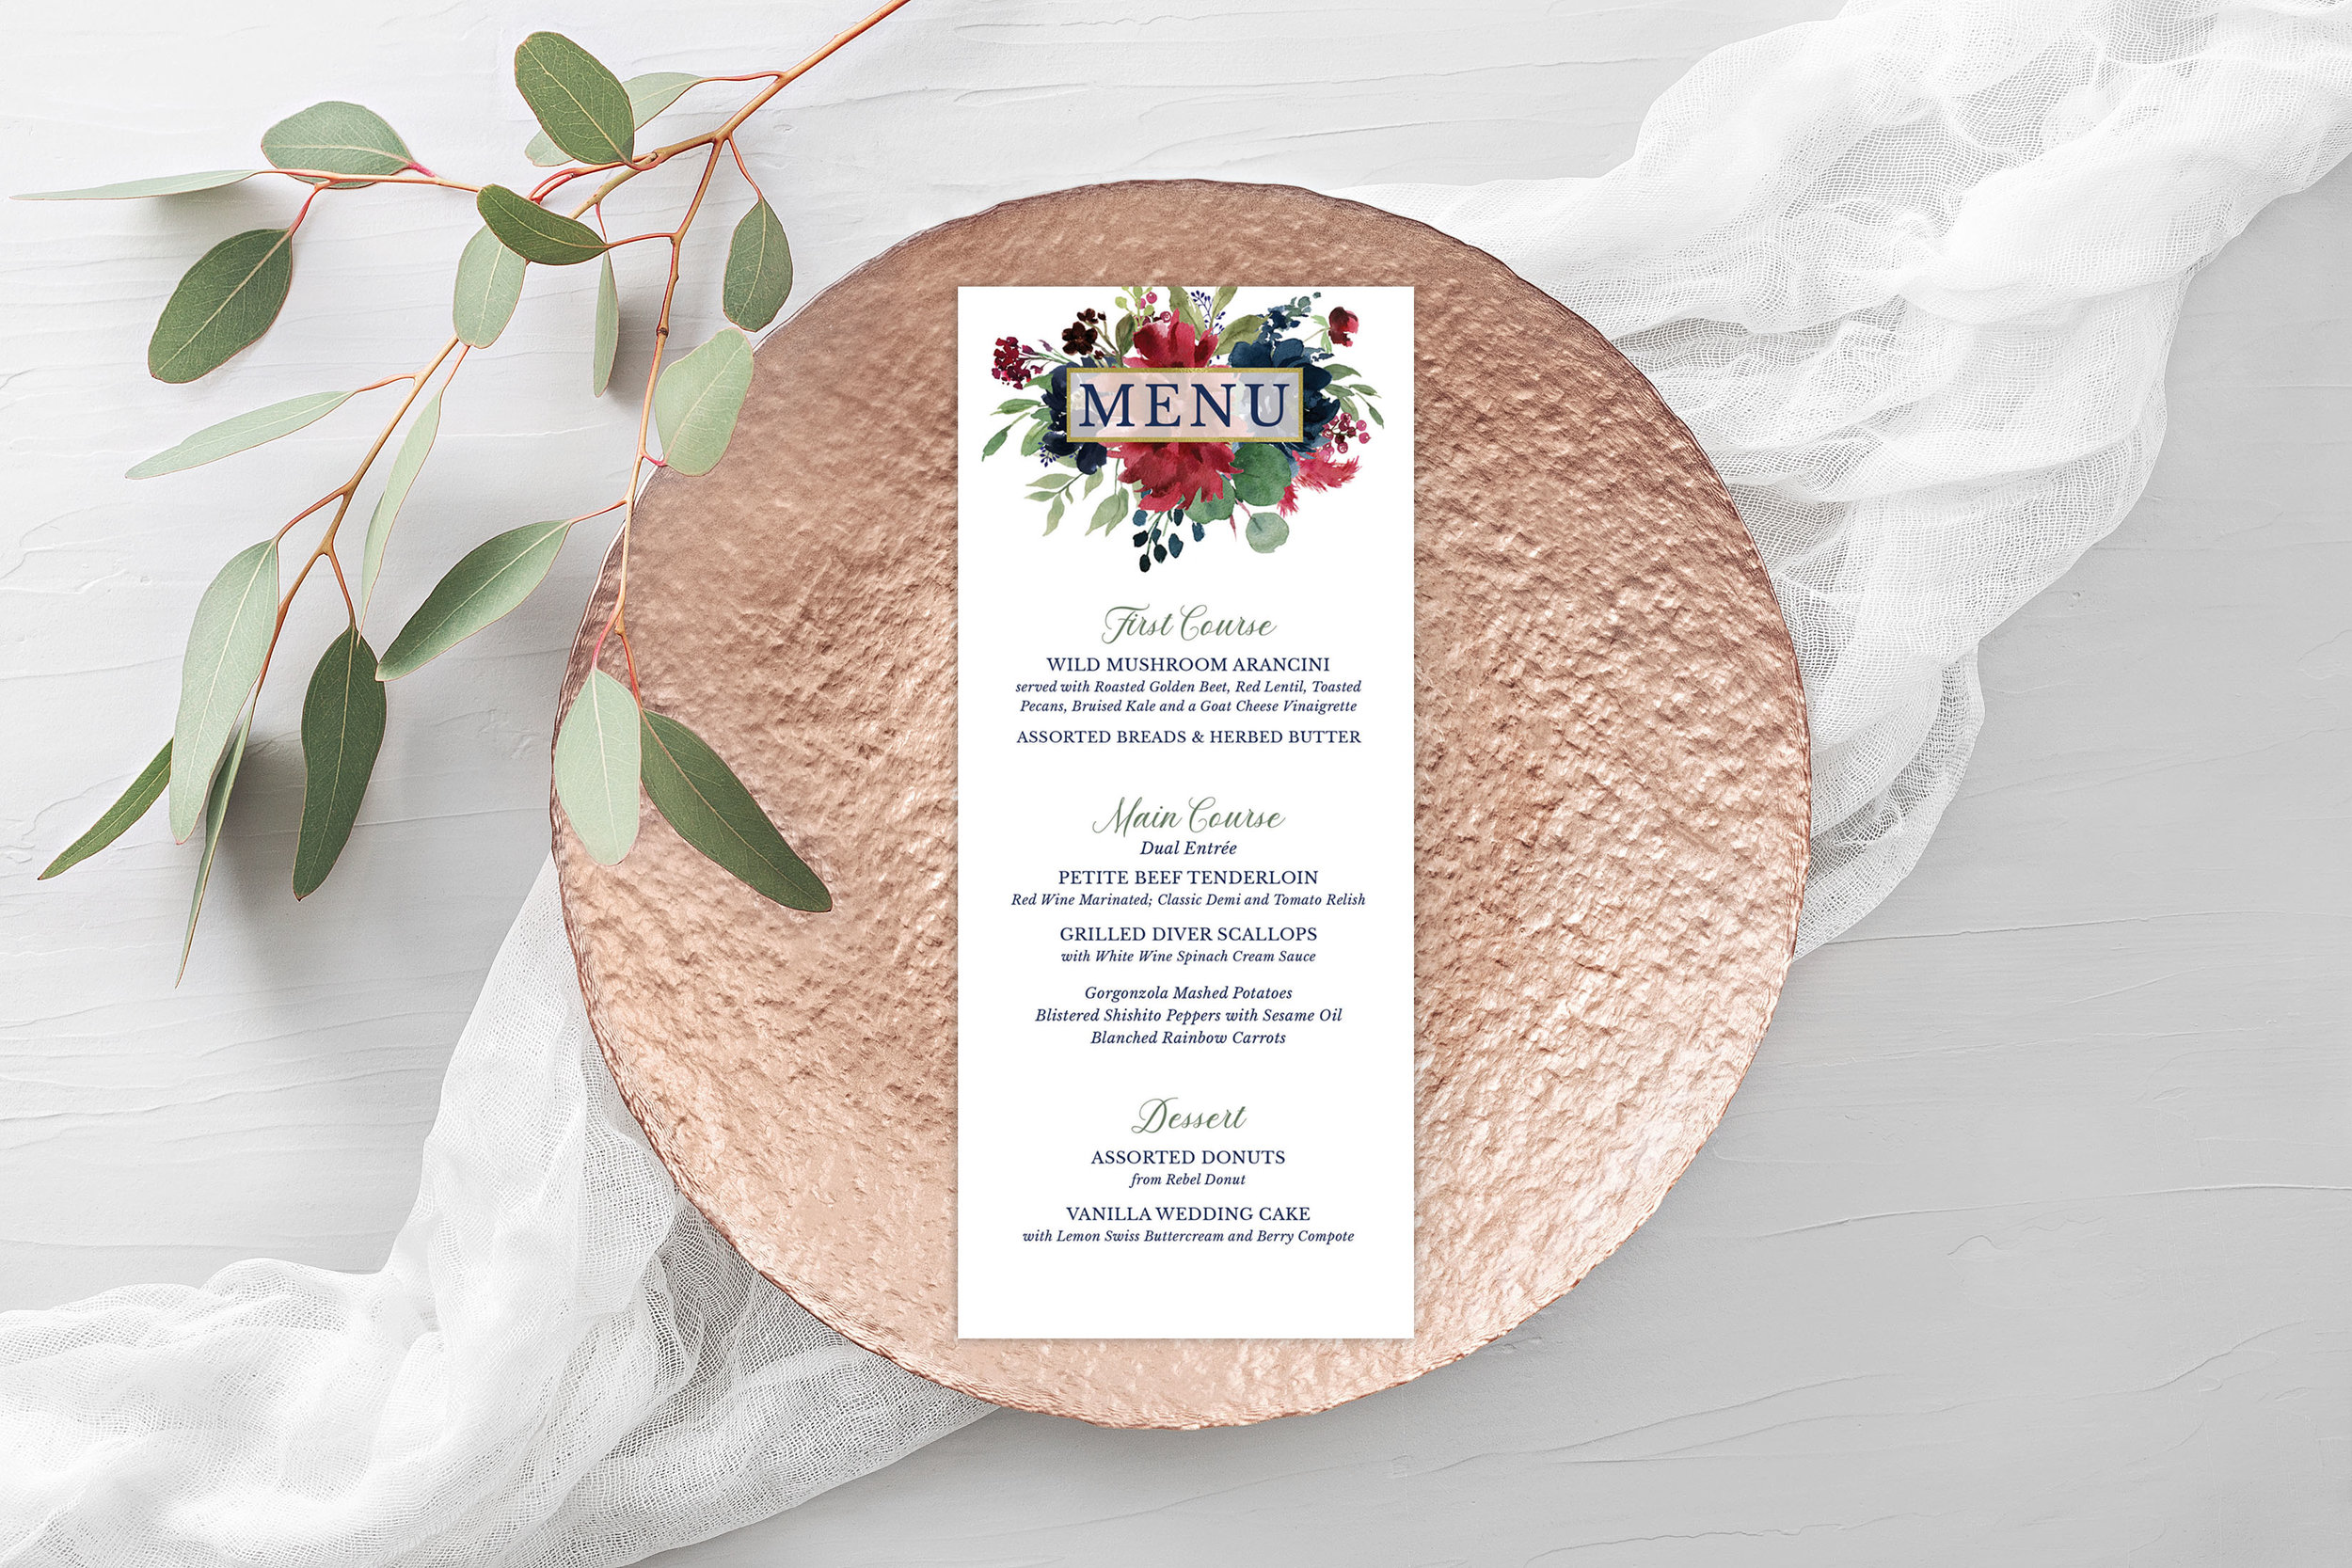 NAVY & BURGUNDY FLORAL MENU.jpg